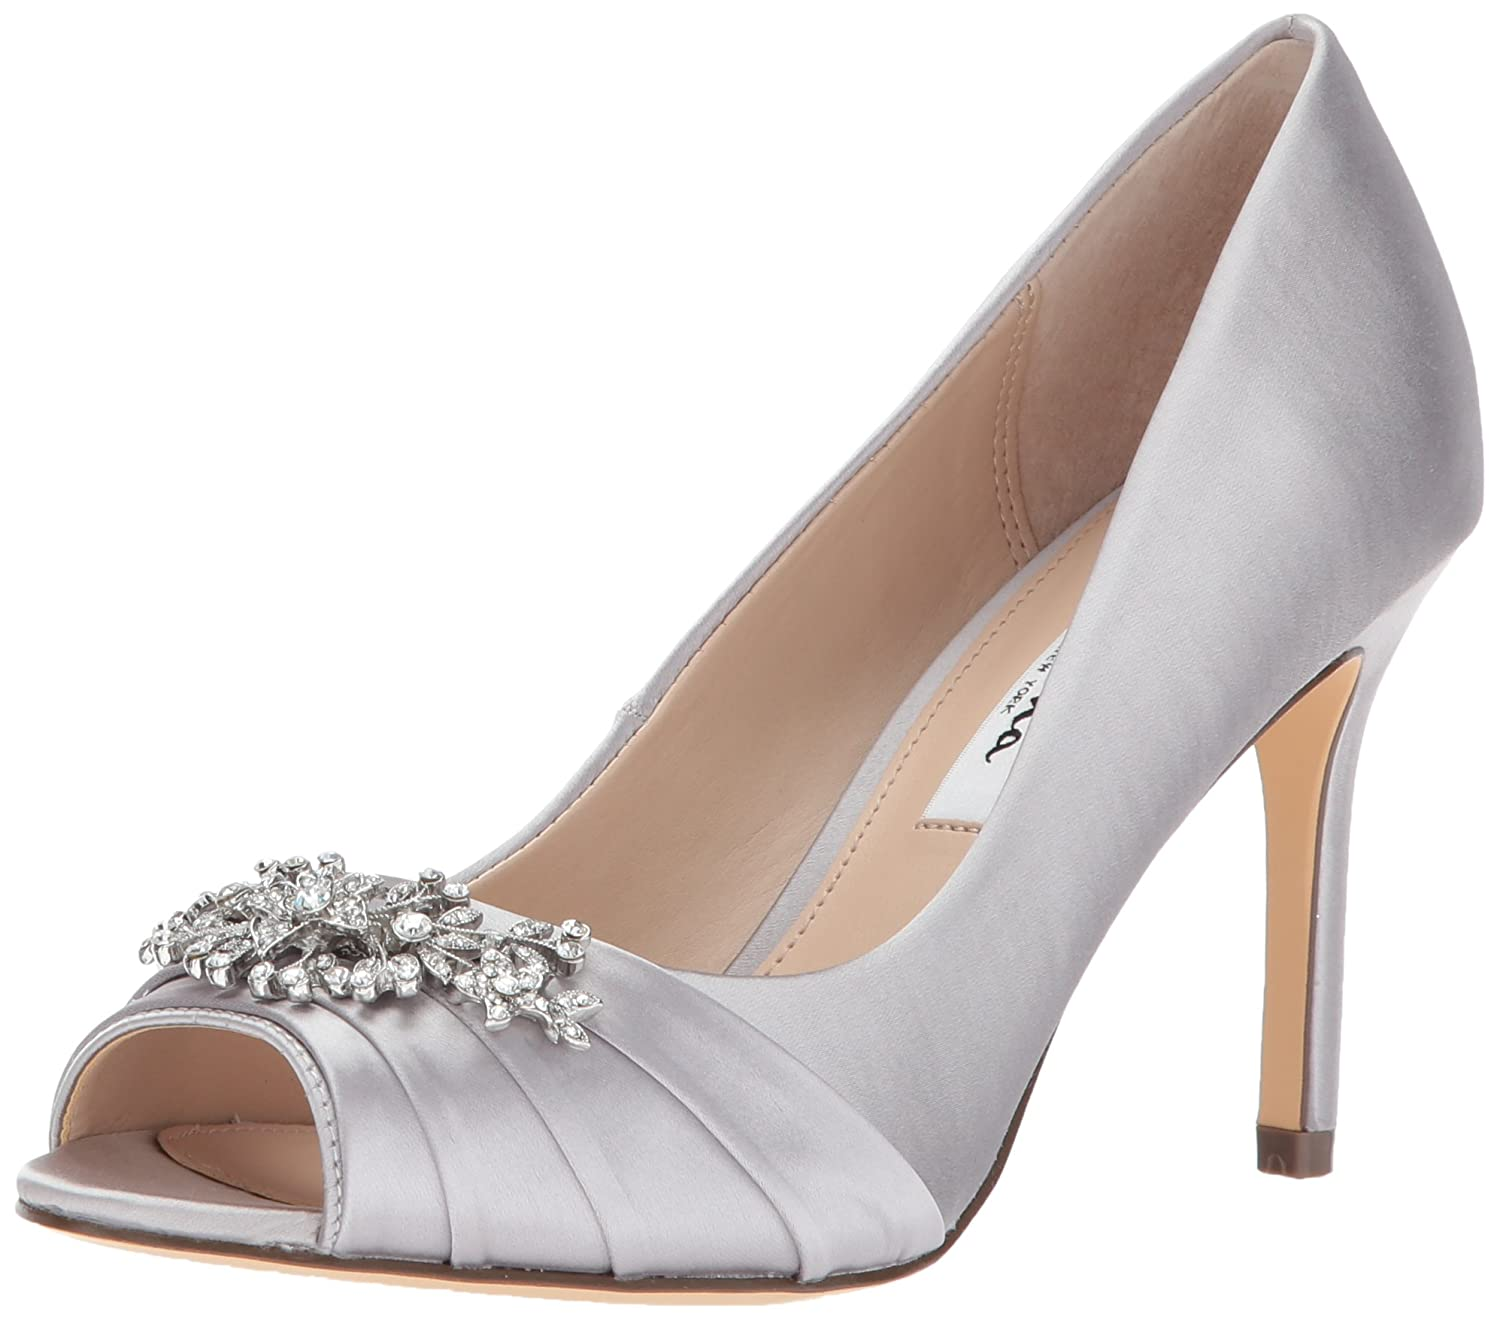 Nina Women's Rumina Dress Pump B0714BTW2L 8.5 B(M) US|Ys-silver